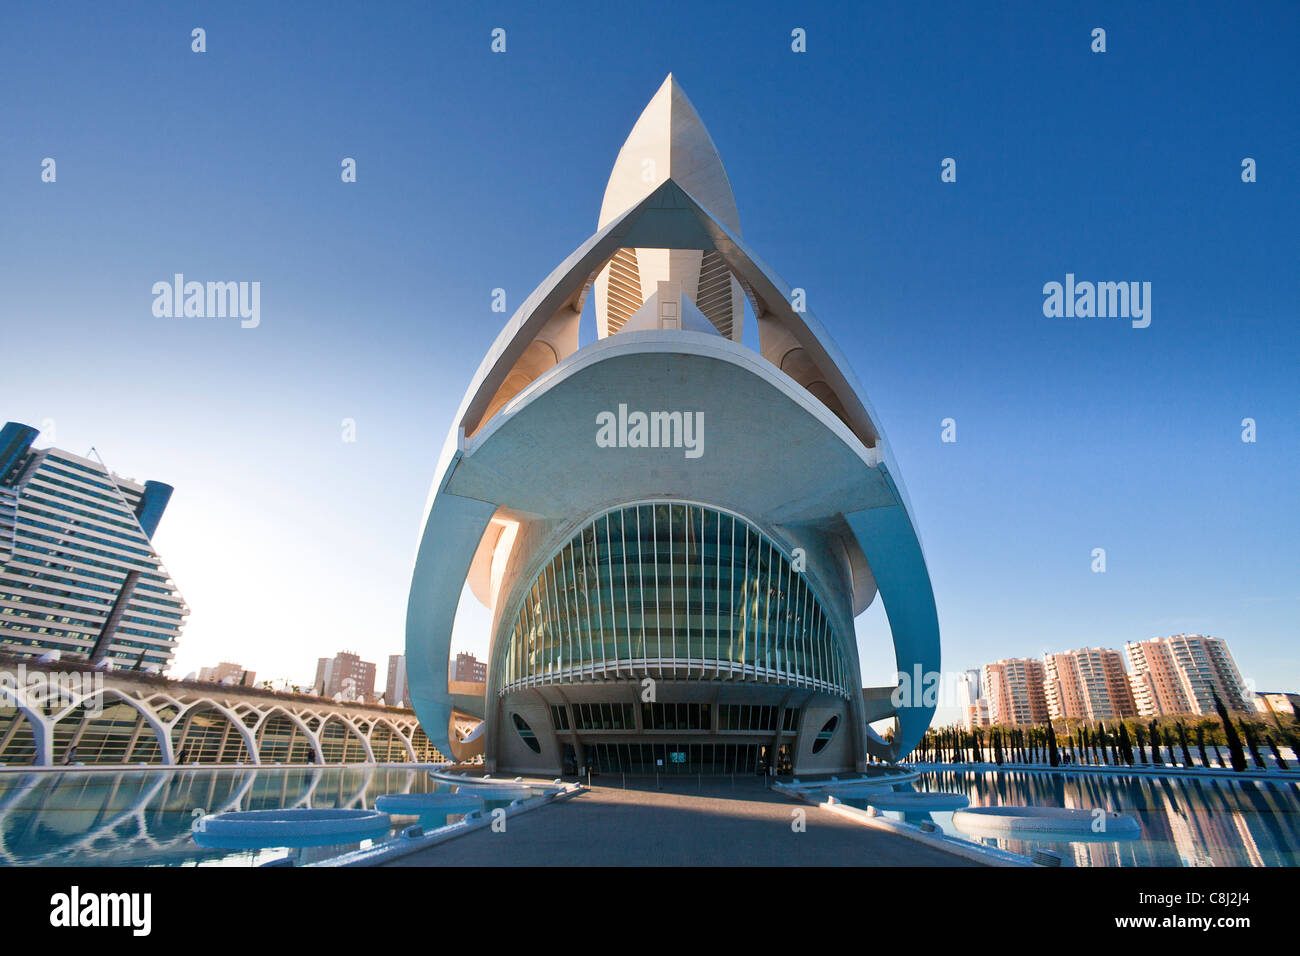 Spain, Europe, Valencia, City of Arts and Science, Calatrava, architecture, modern, Joan Ripolles, sculpture, art, - Stock Image